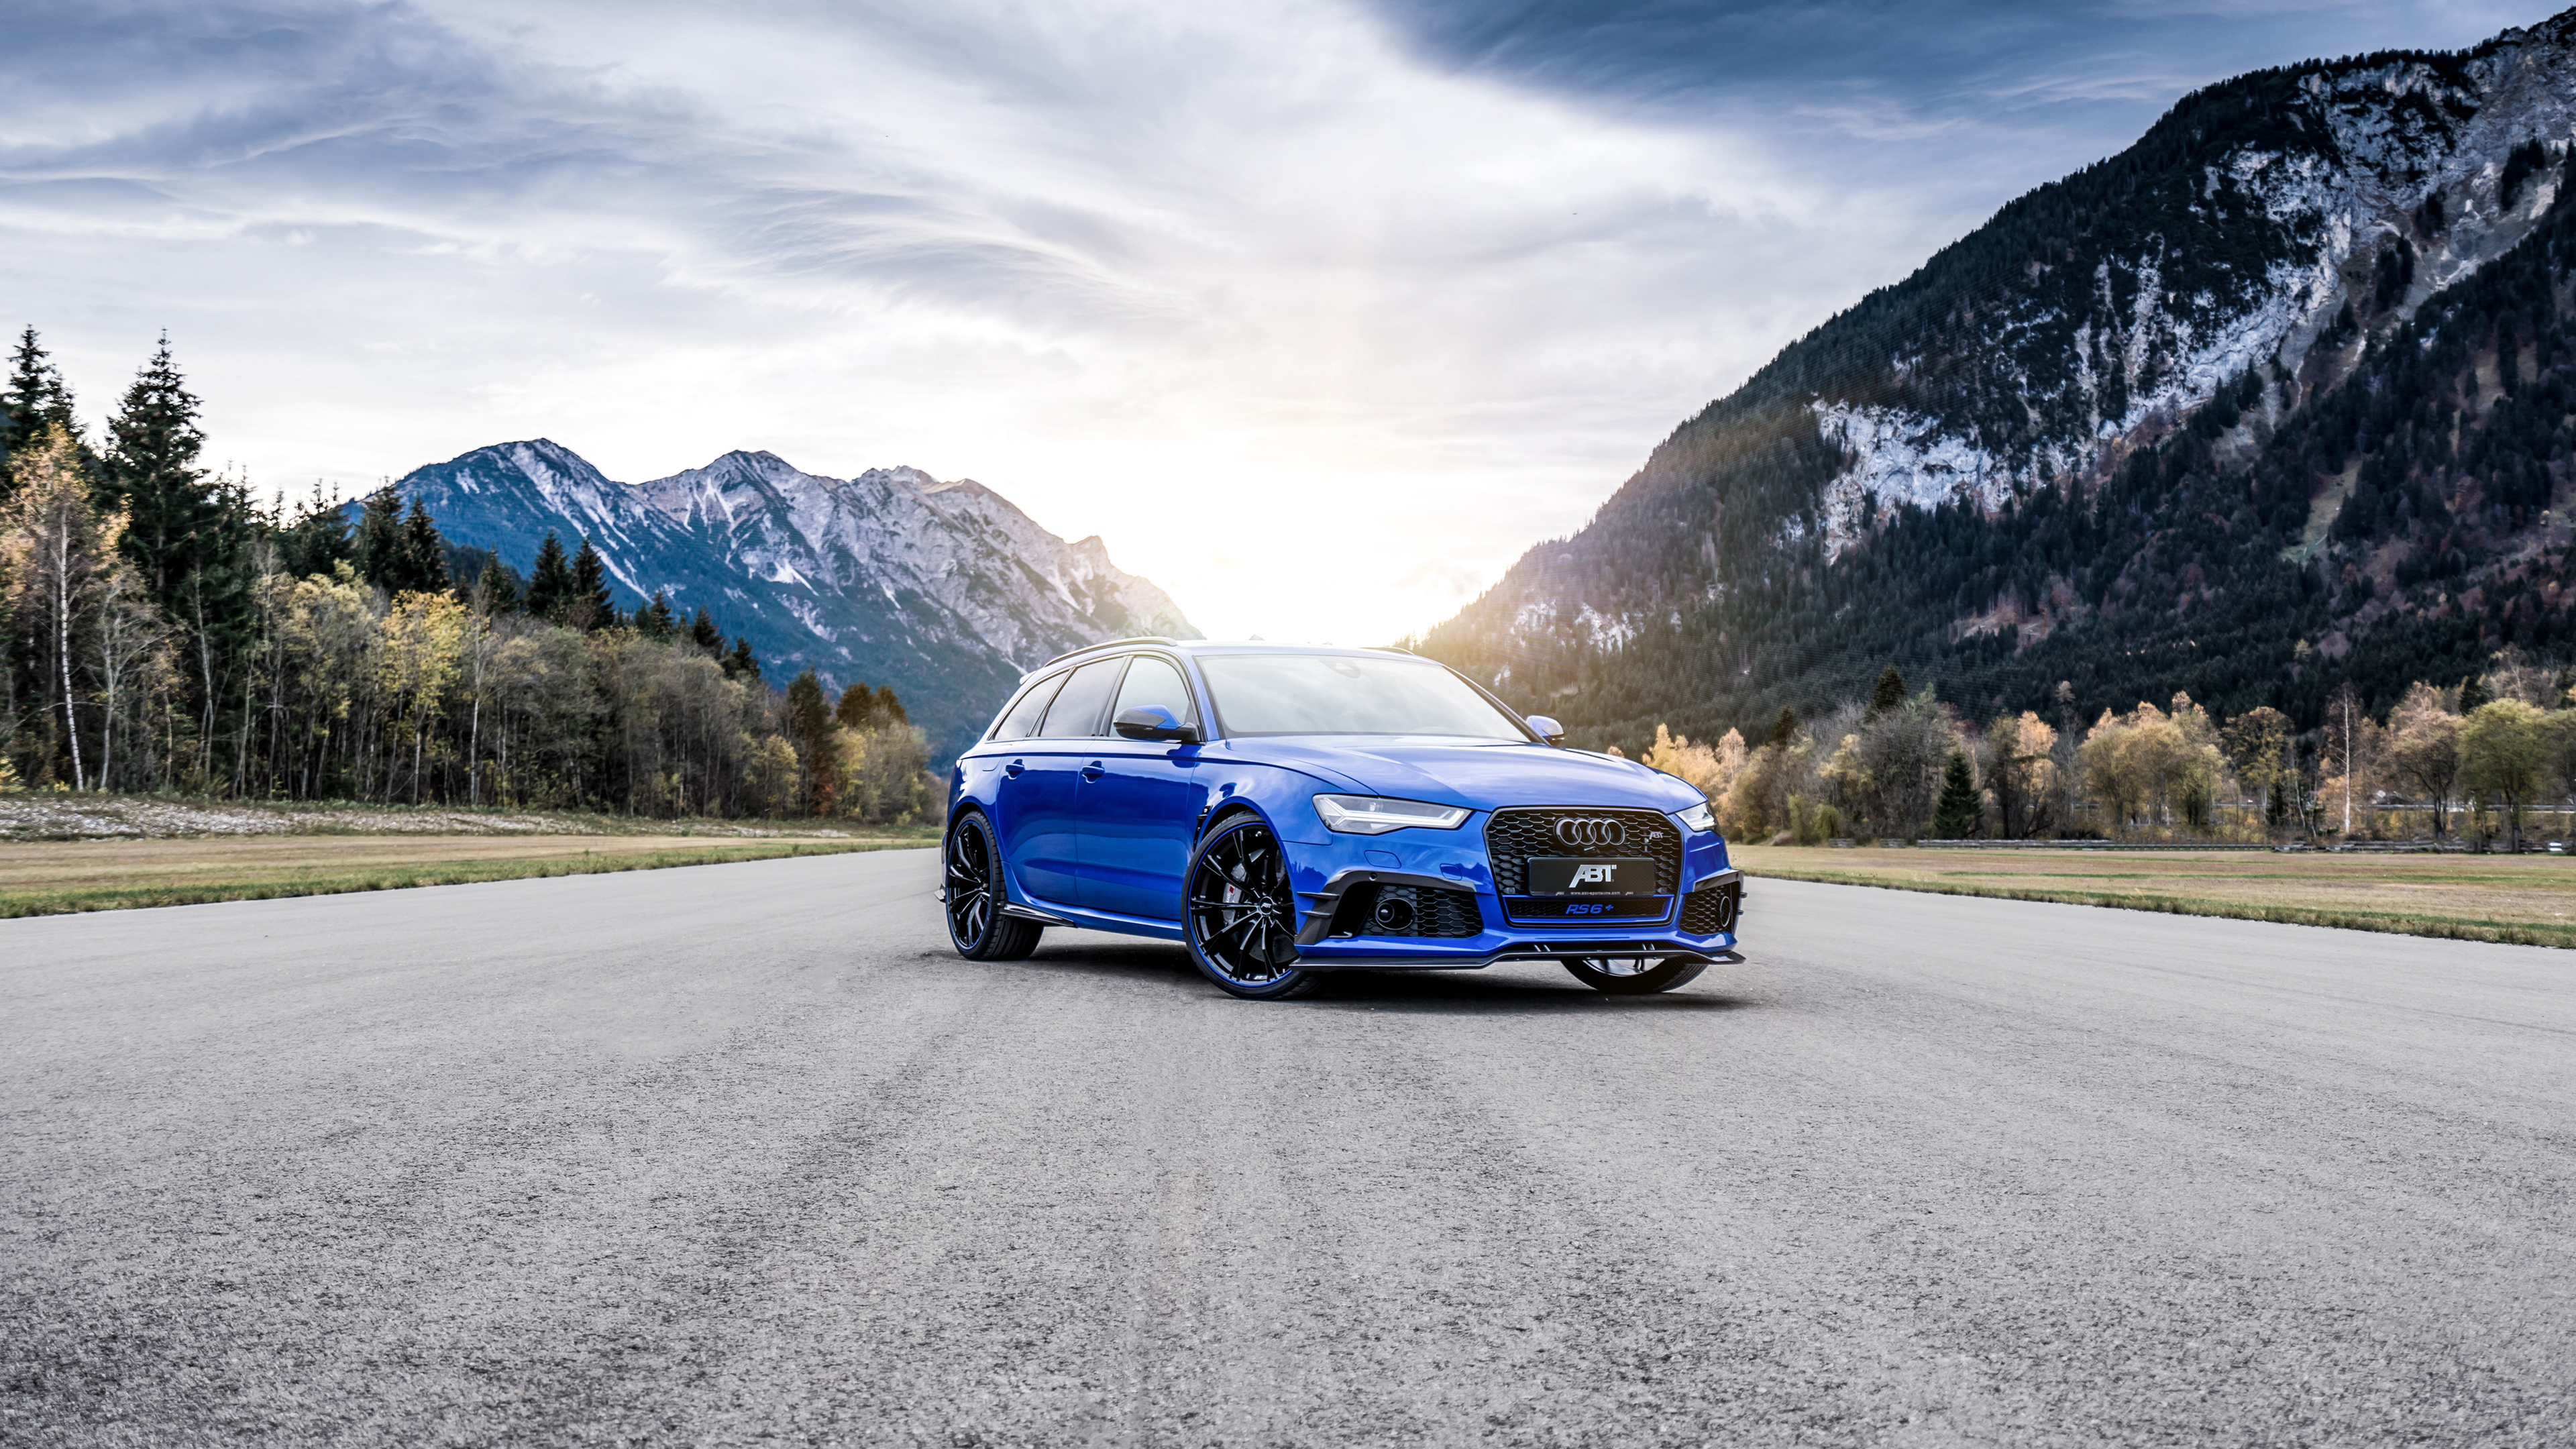 3840x2160 - Audi RS6 Wallpapers 12